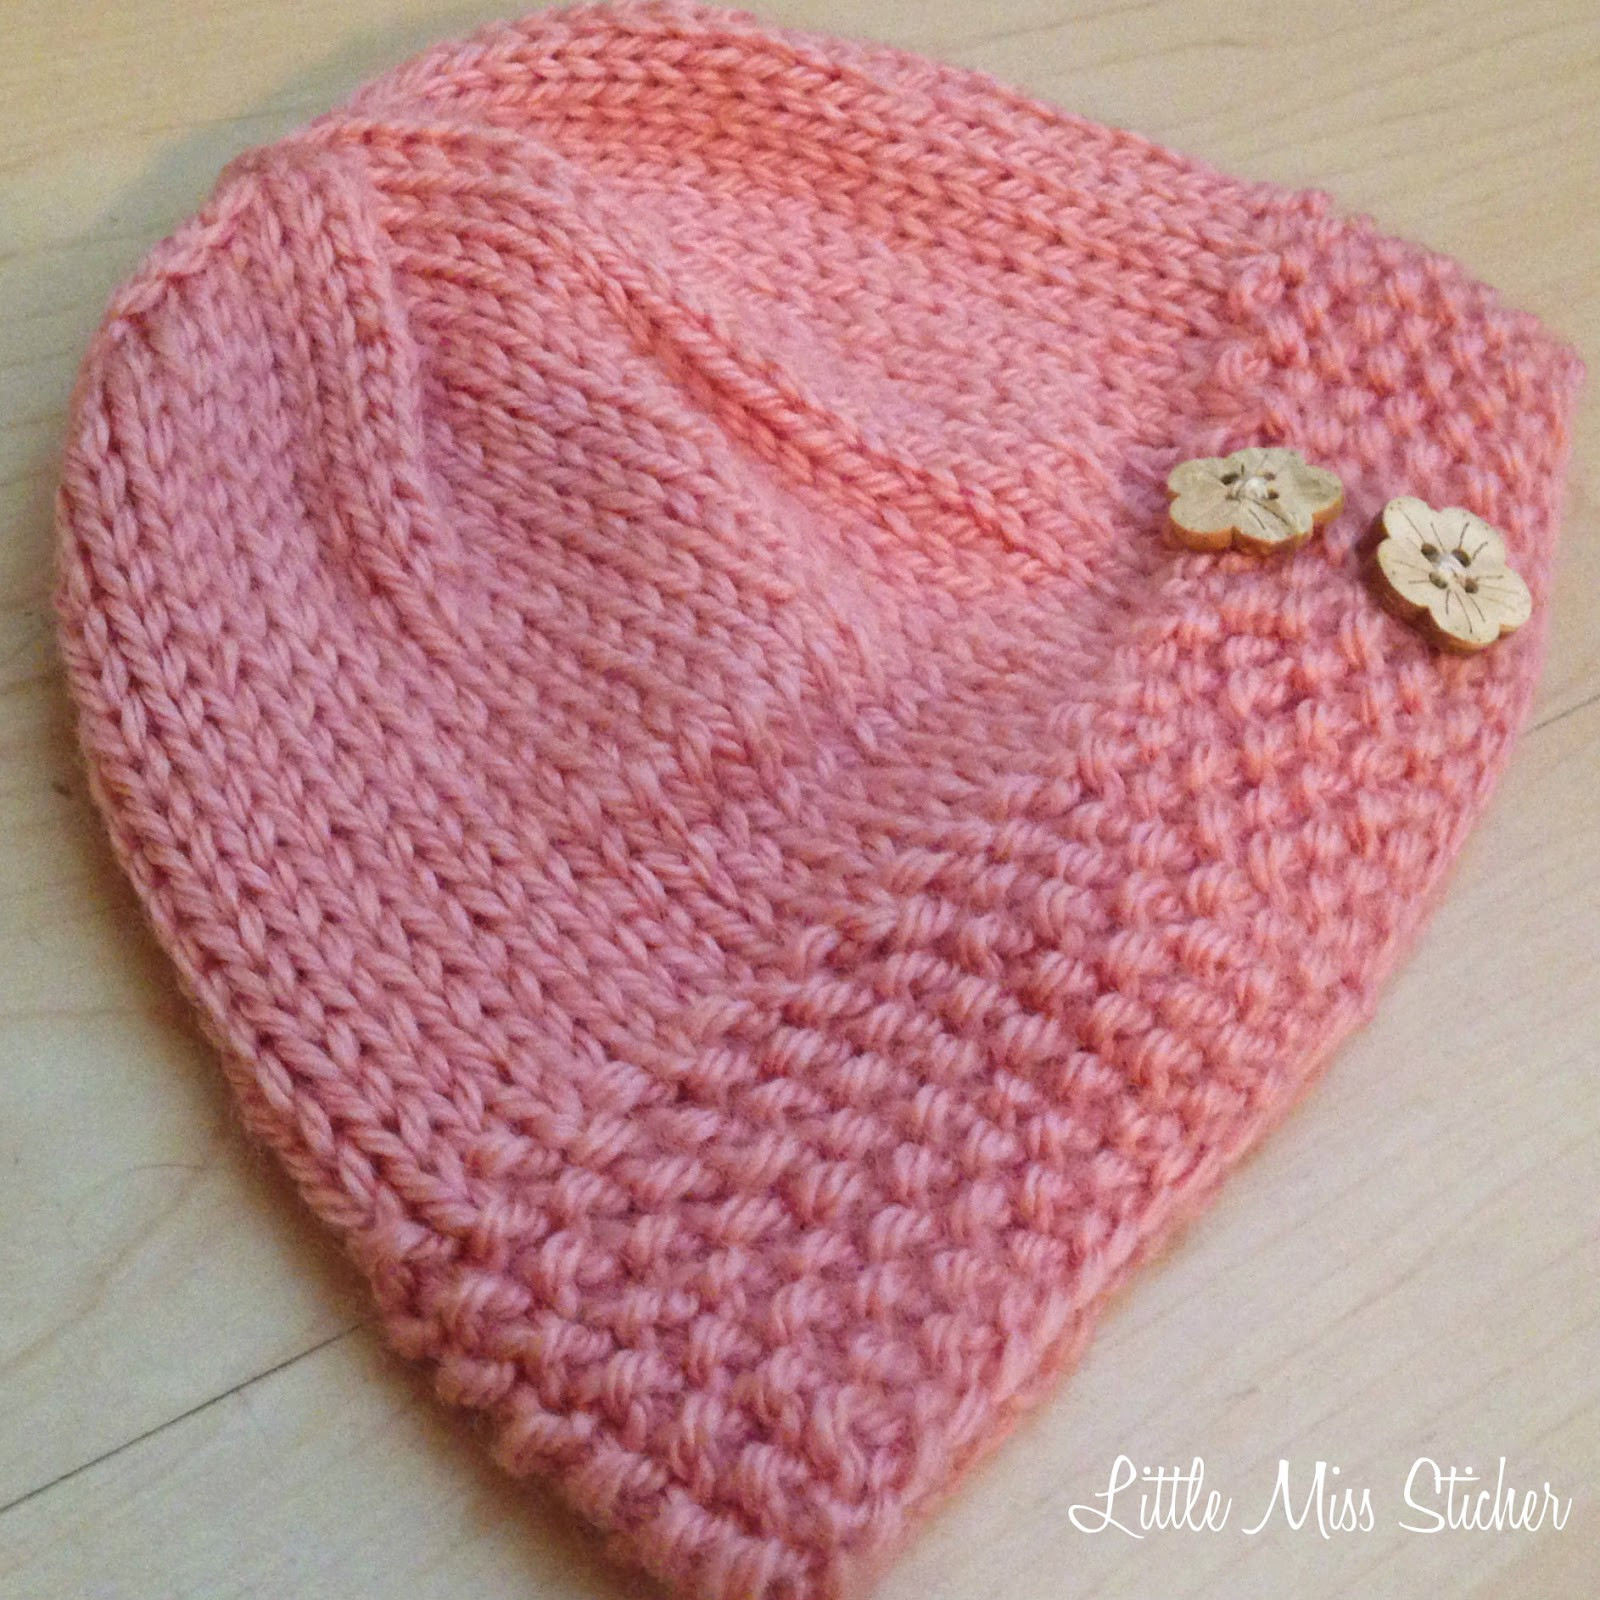 Free Knitting Patterns for Baby Hats Unique Little Miss Stitcher Bitty Beanie Free Knit Pattern Of Perfect 44 Models Free Knitting Patterns for Baby Hats